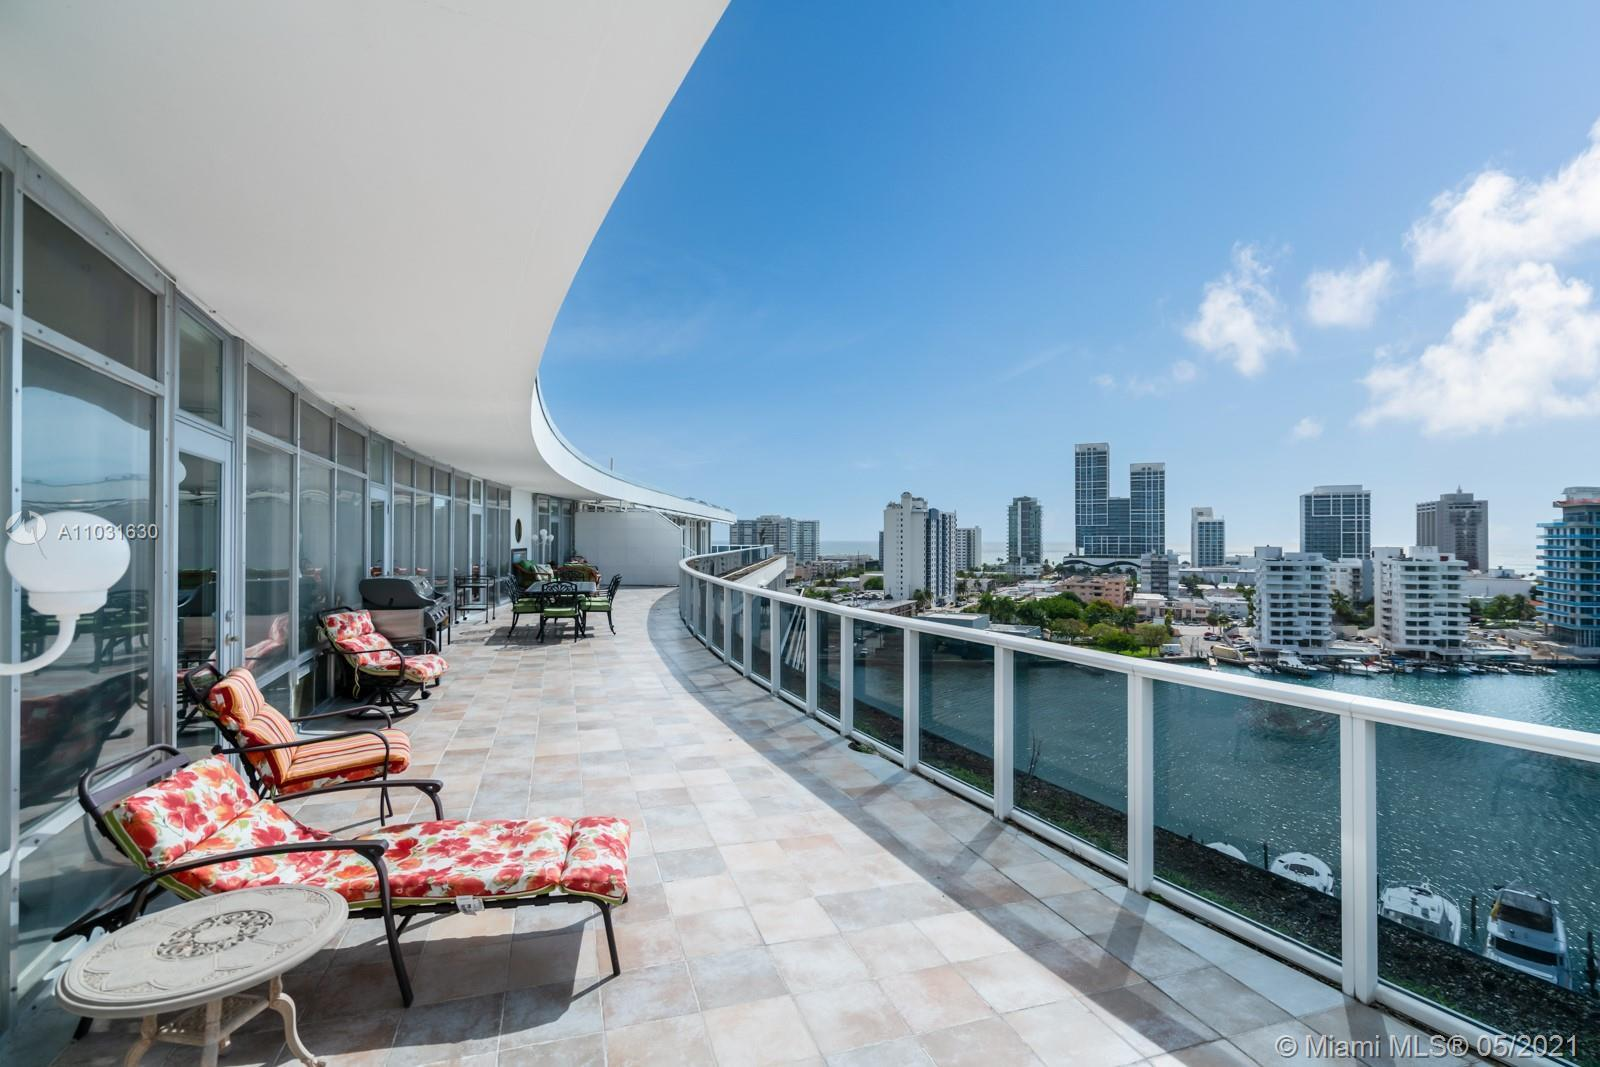 Marvel at the spectacular views of the Intracoastal, Atlantic Ocean, and Miami skyline from this bea